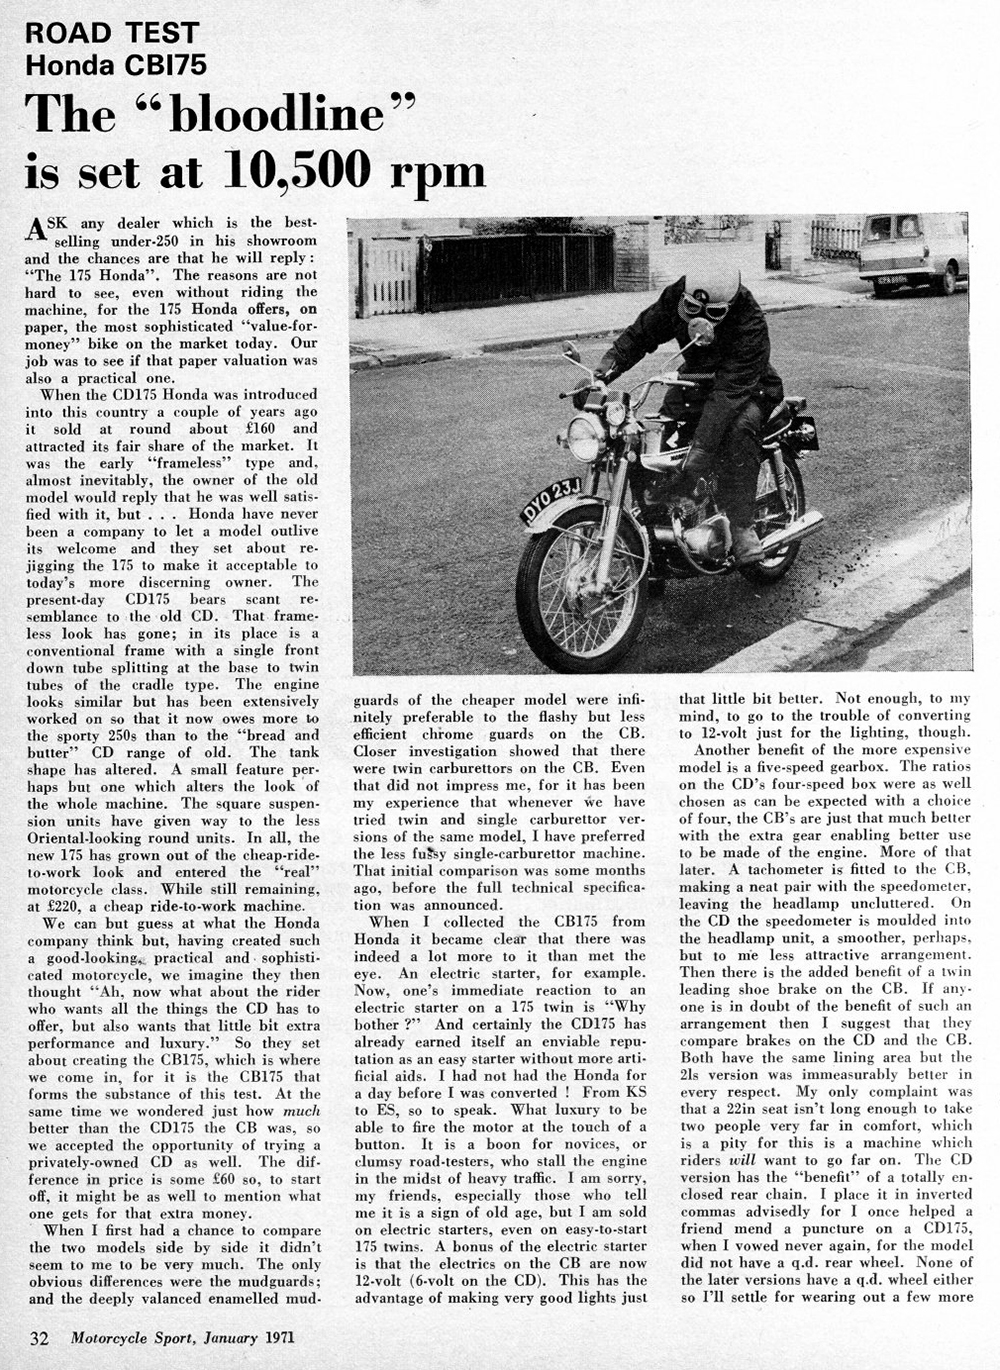 1971 Honda CB175 road test 1.jpg